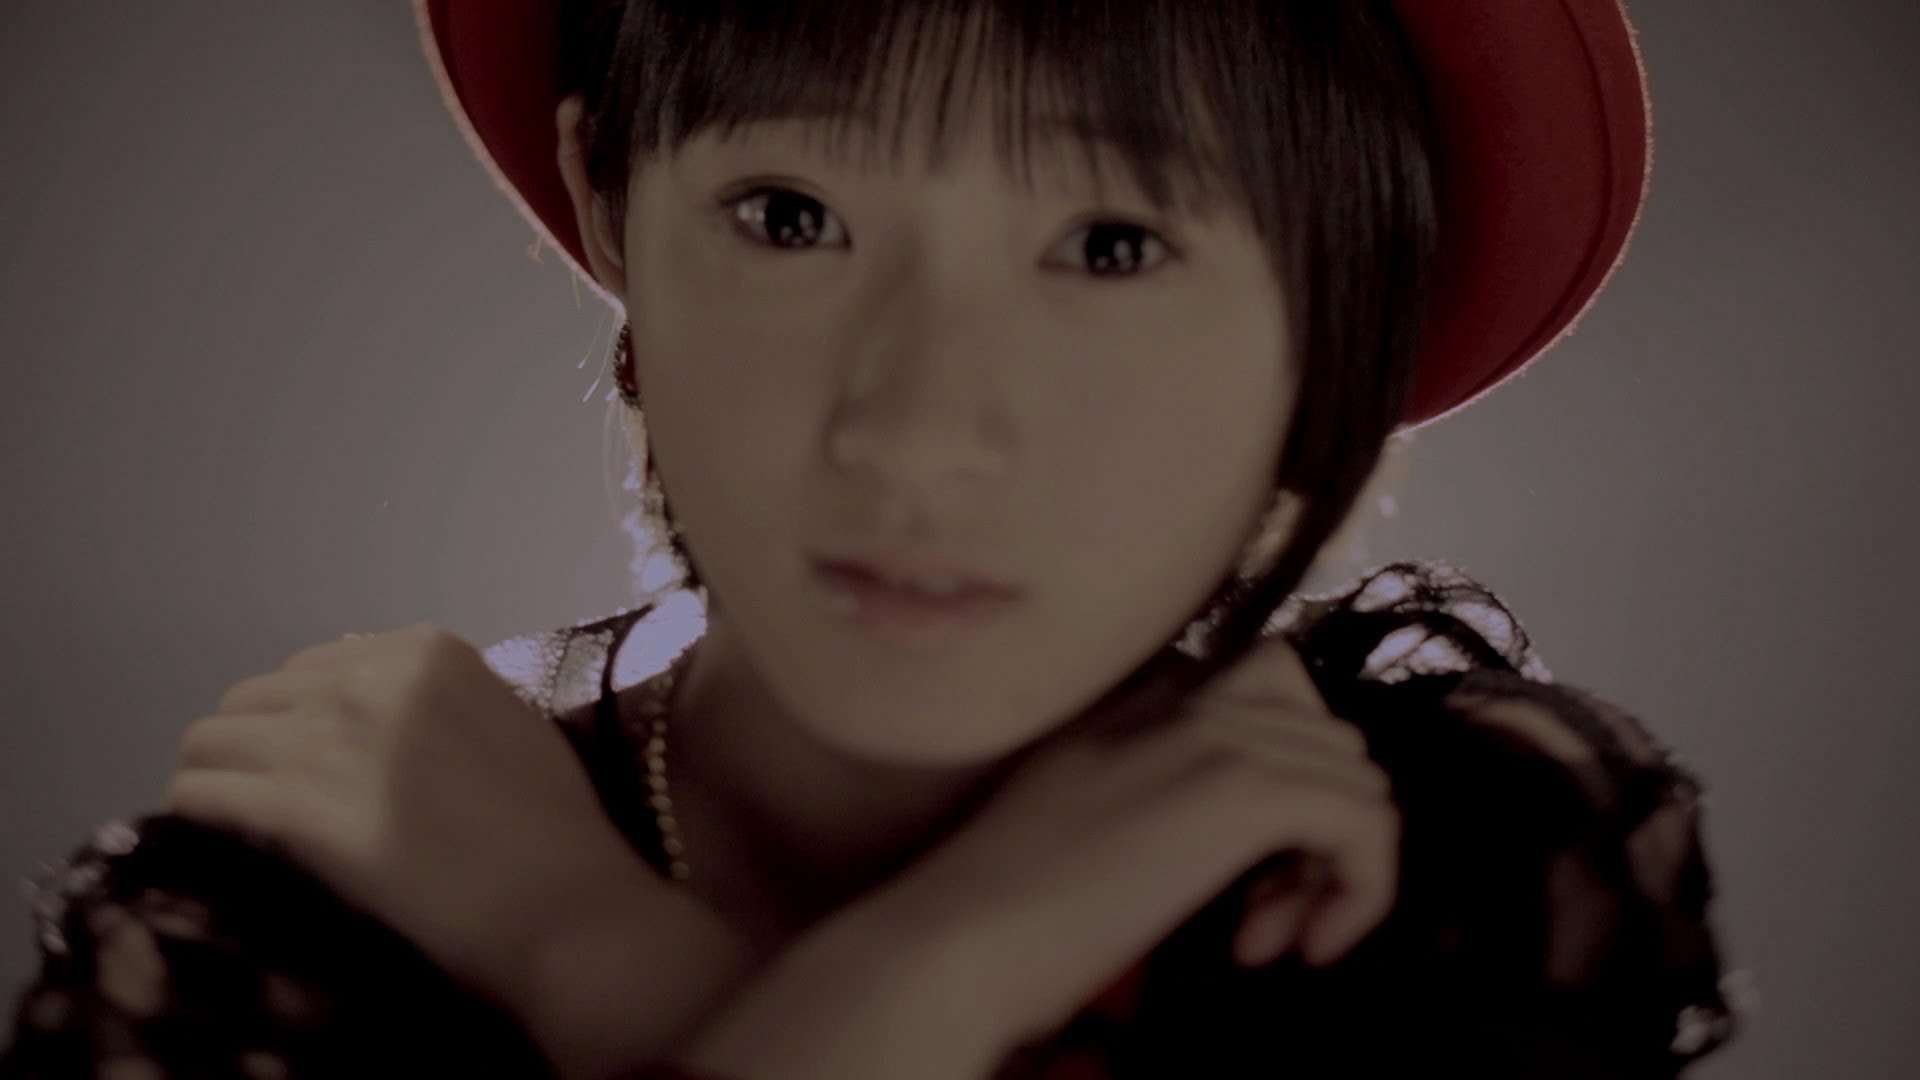 Juice=Juice 『イジワルしないで 抱きしめてよ』[Don't be spiteful, but embrace me](MV) - YouTube